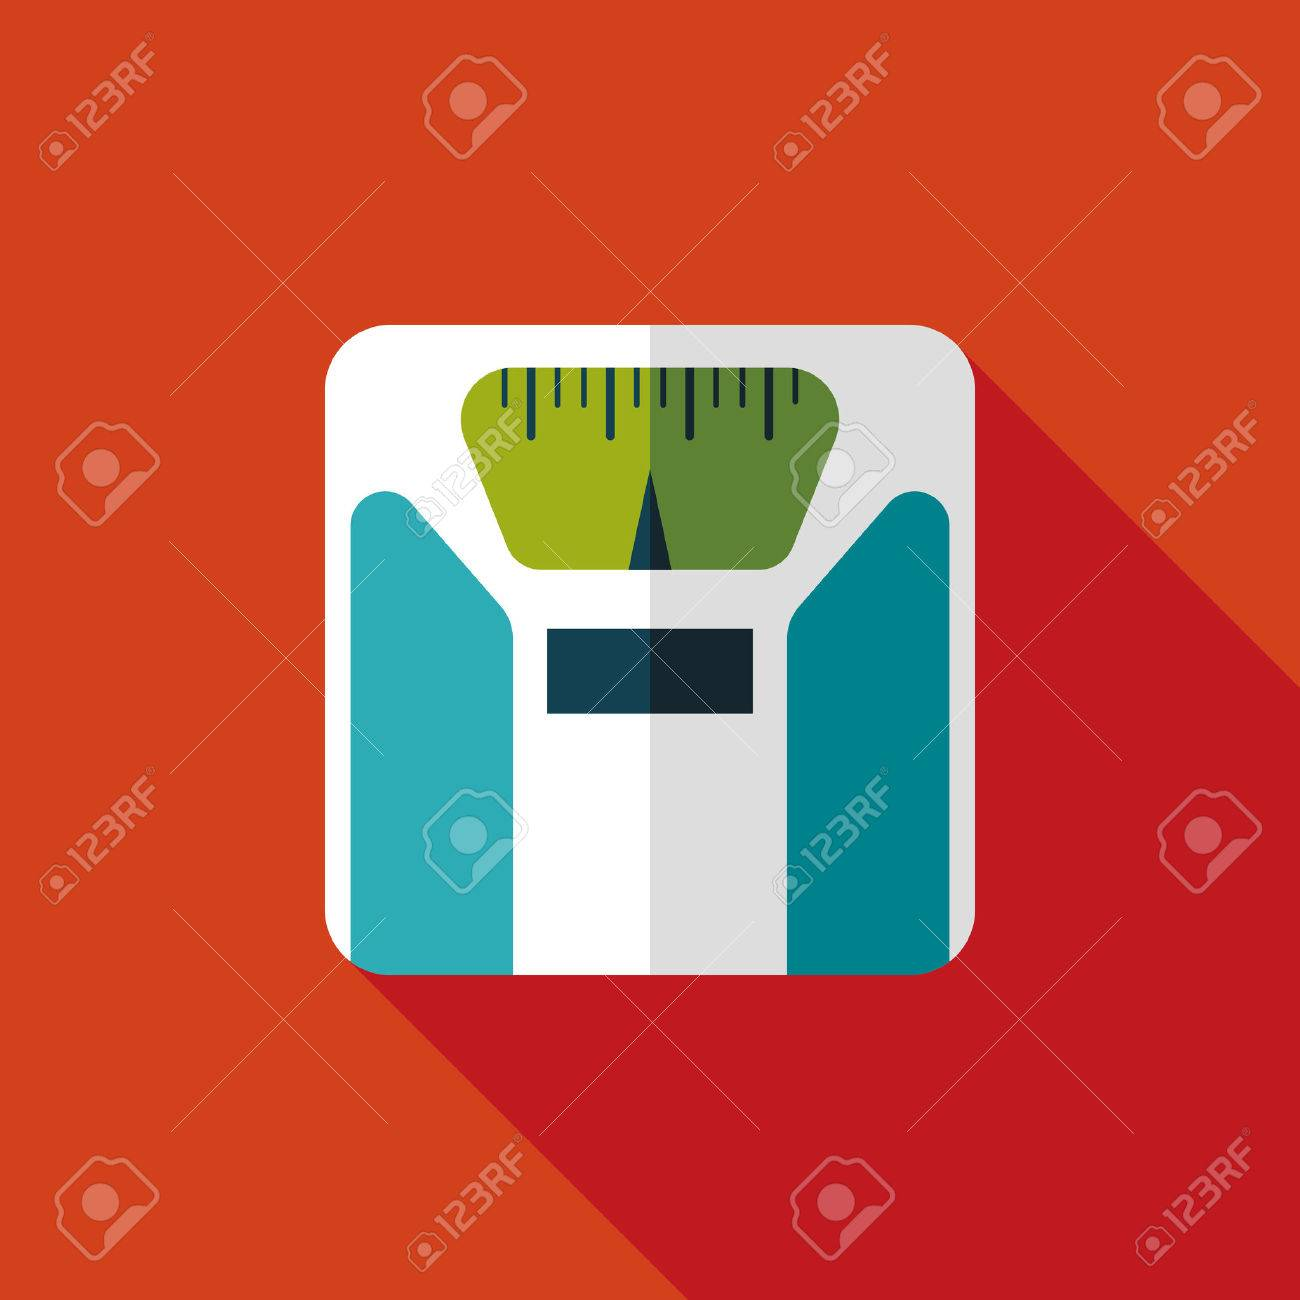 Flat style with long shadows, weight scale vector icon illustration. - 30578759